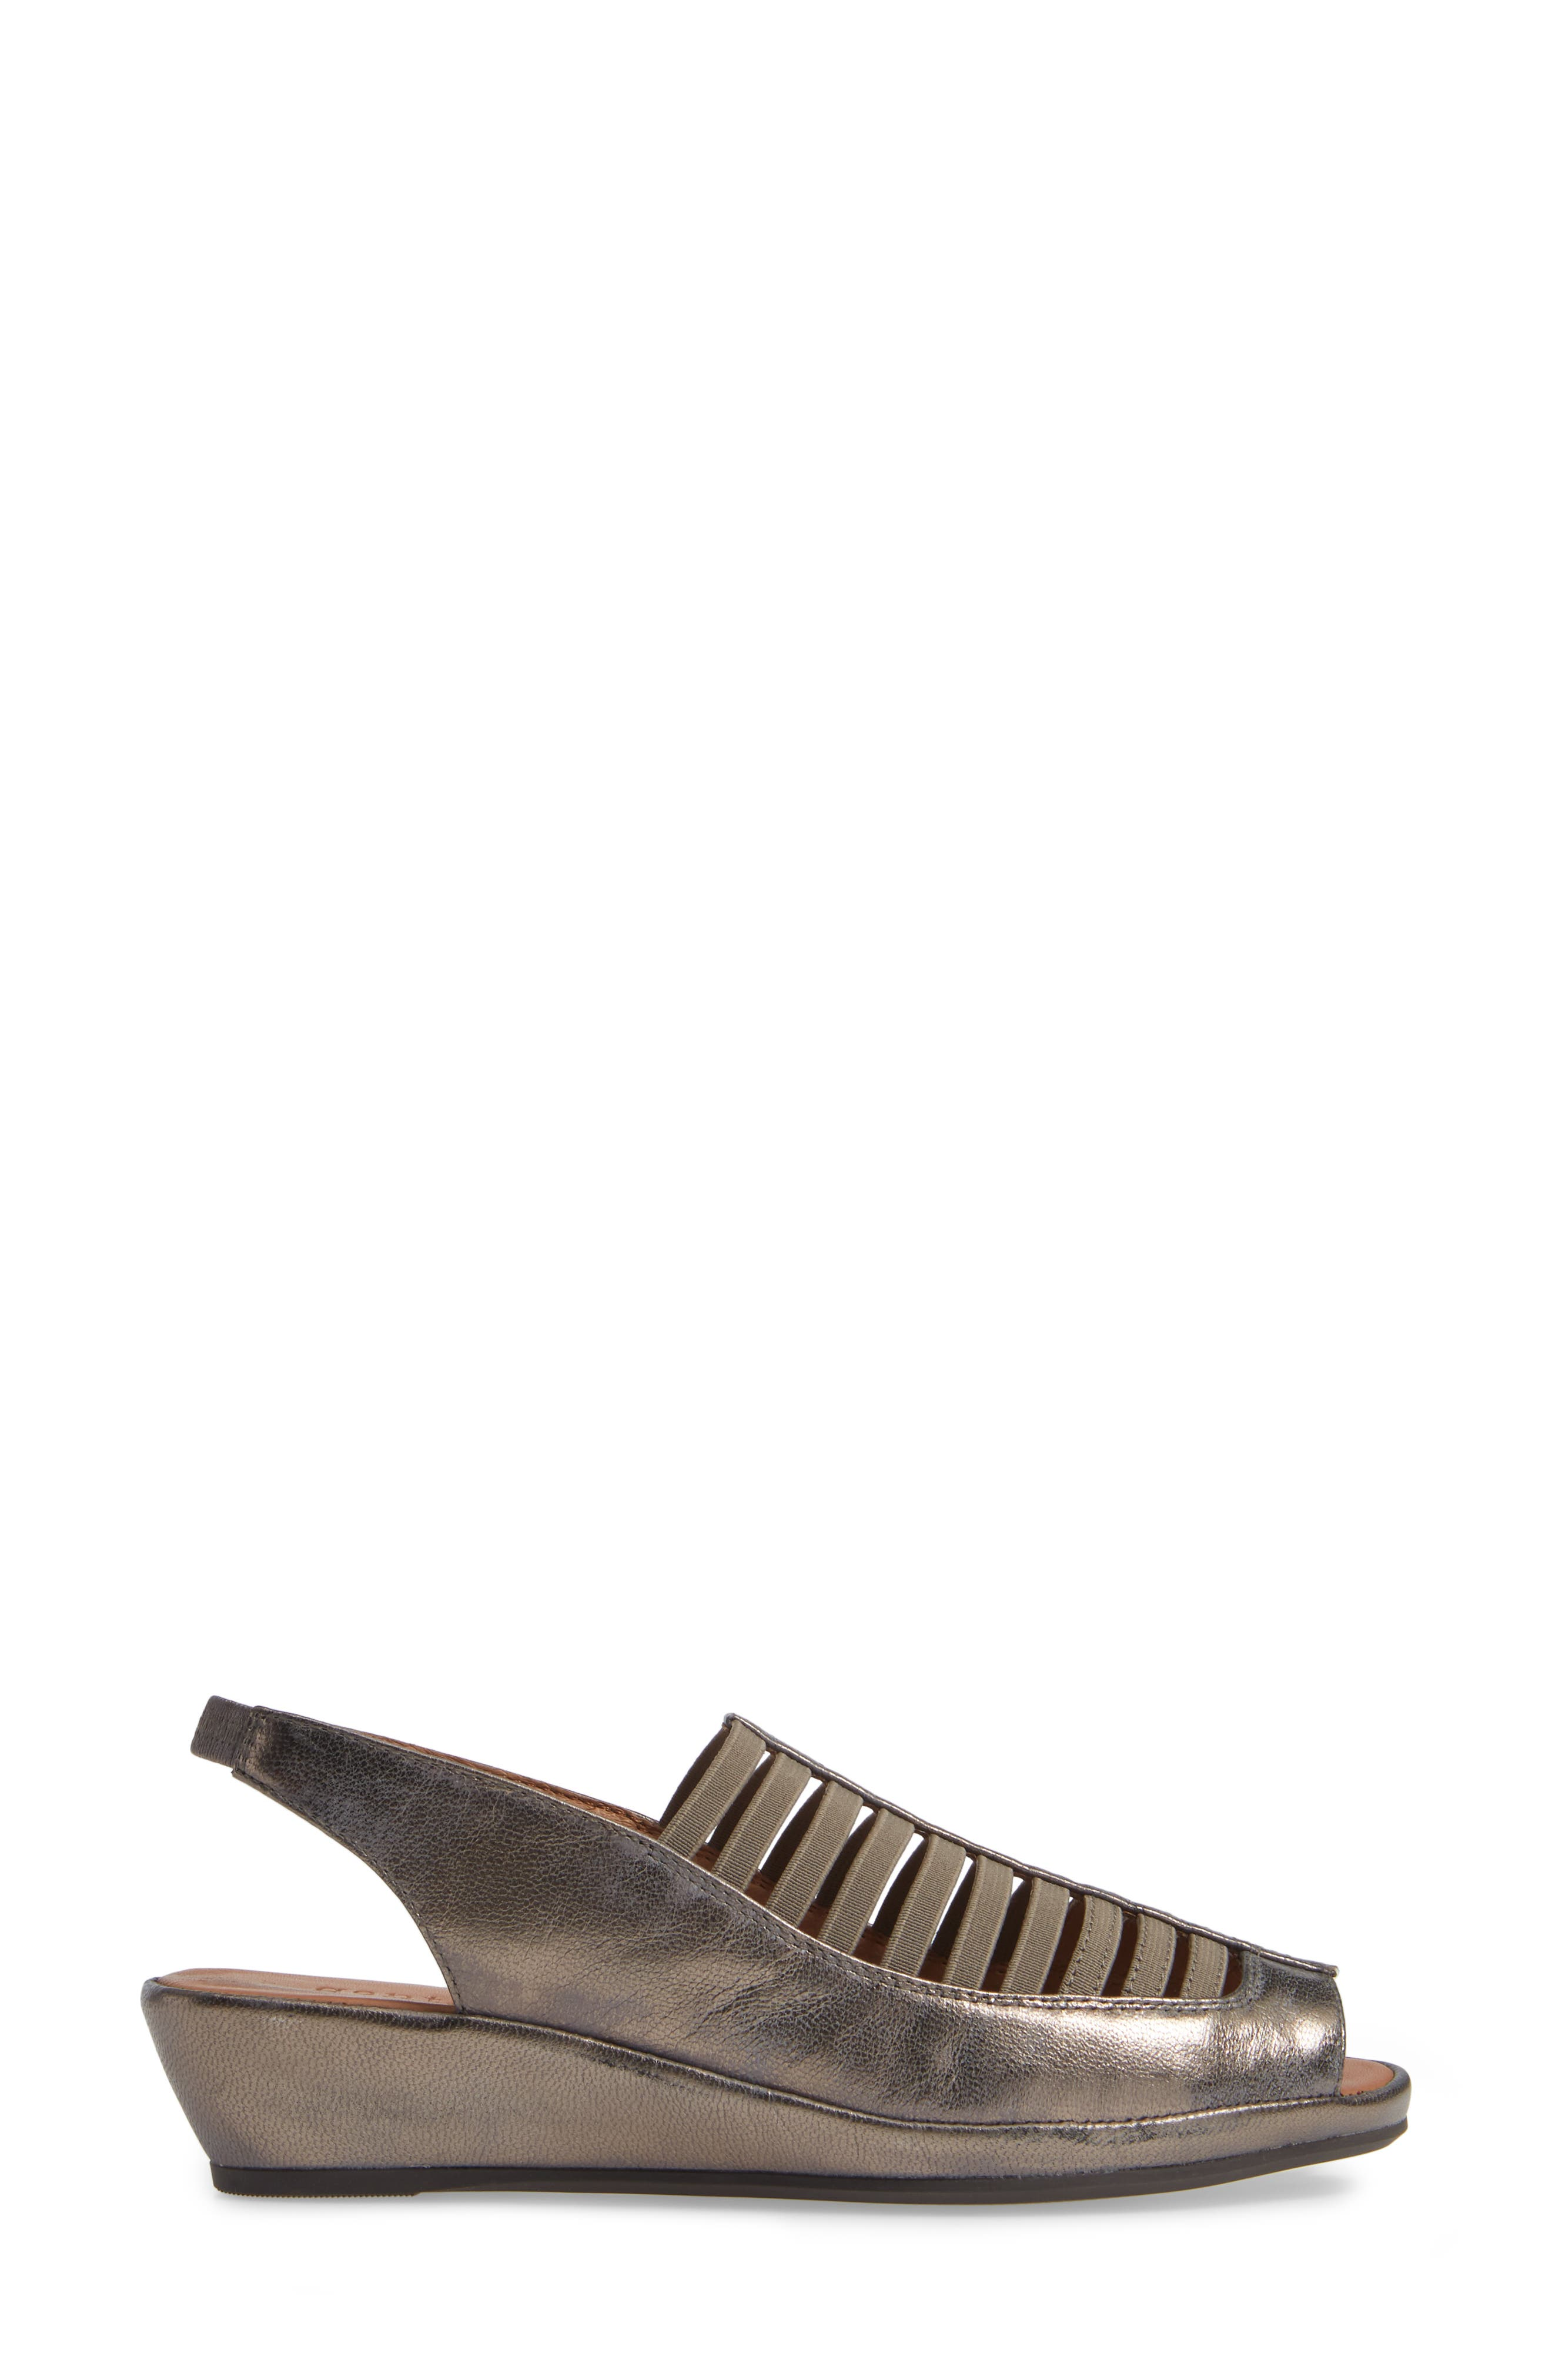 GENTLE SOULS BY KENNETH COLE, 'Lee' Sandal, Alternate thumbnail 3, color, PEWTER METALLIC LEATHER